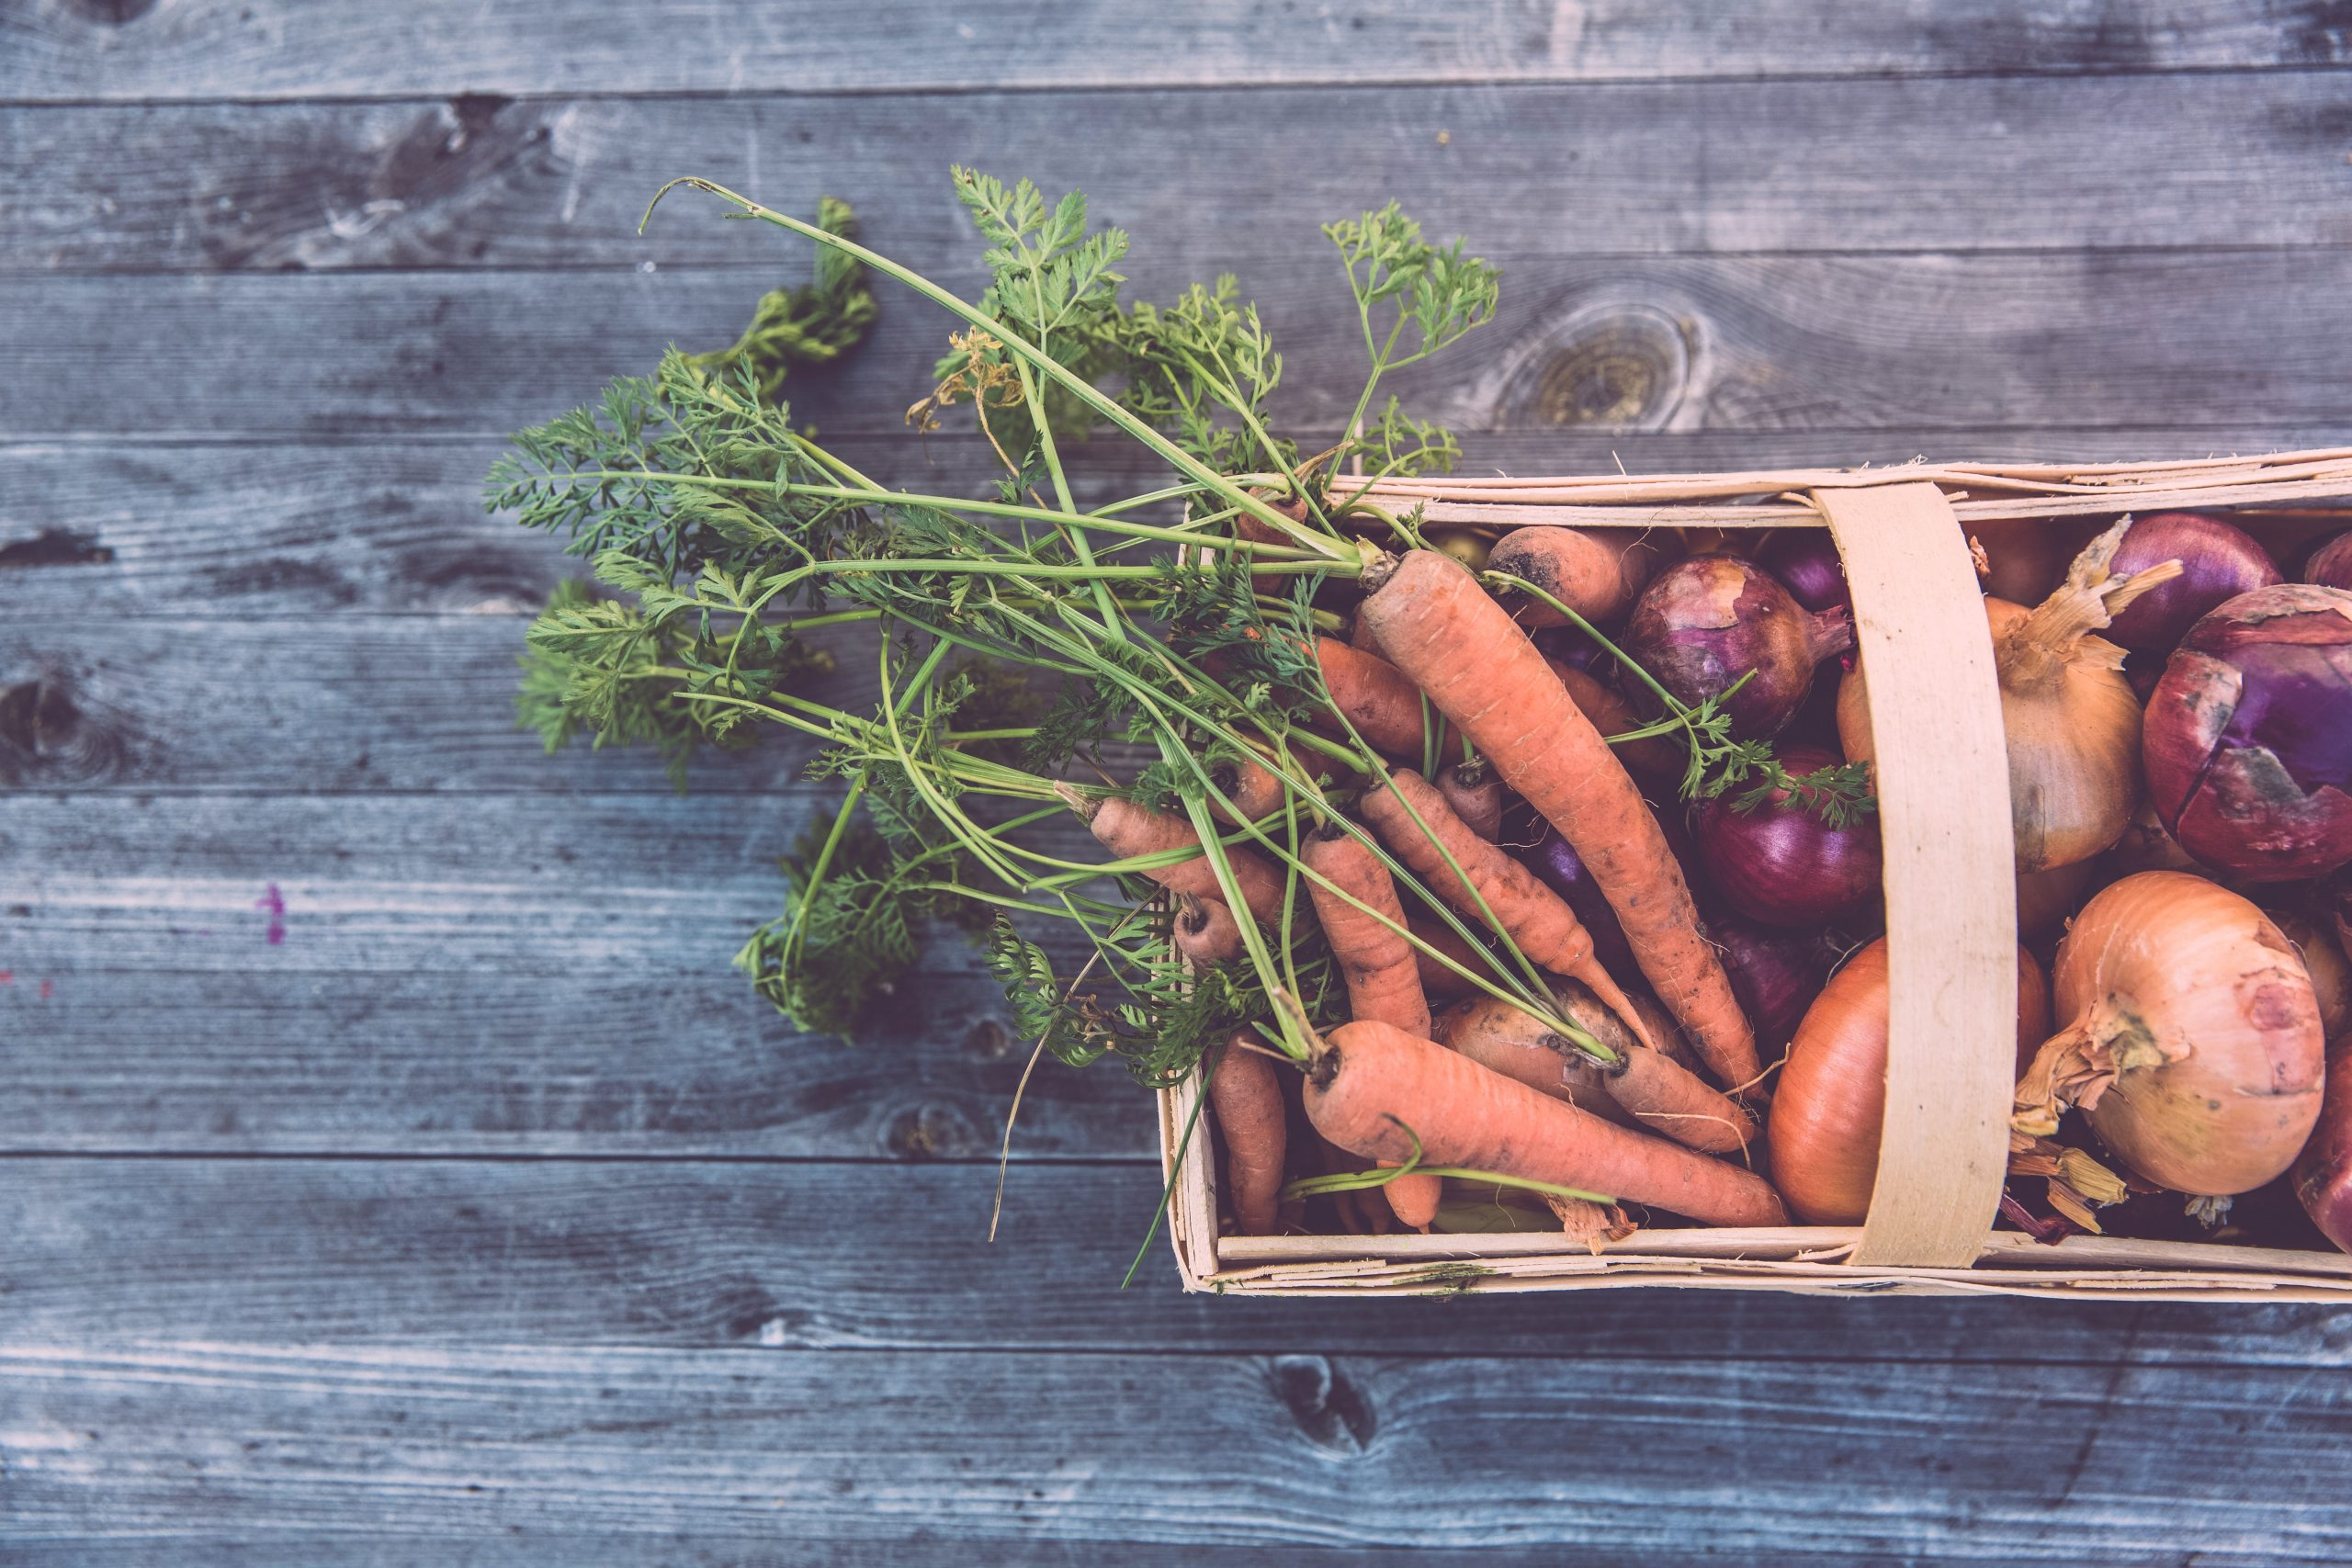 How to Prevent Food Waste and Save on Groceries